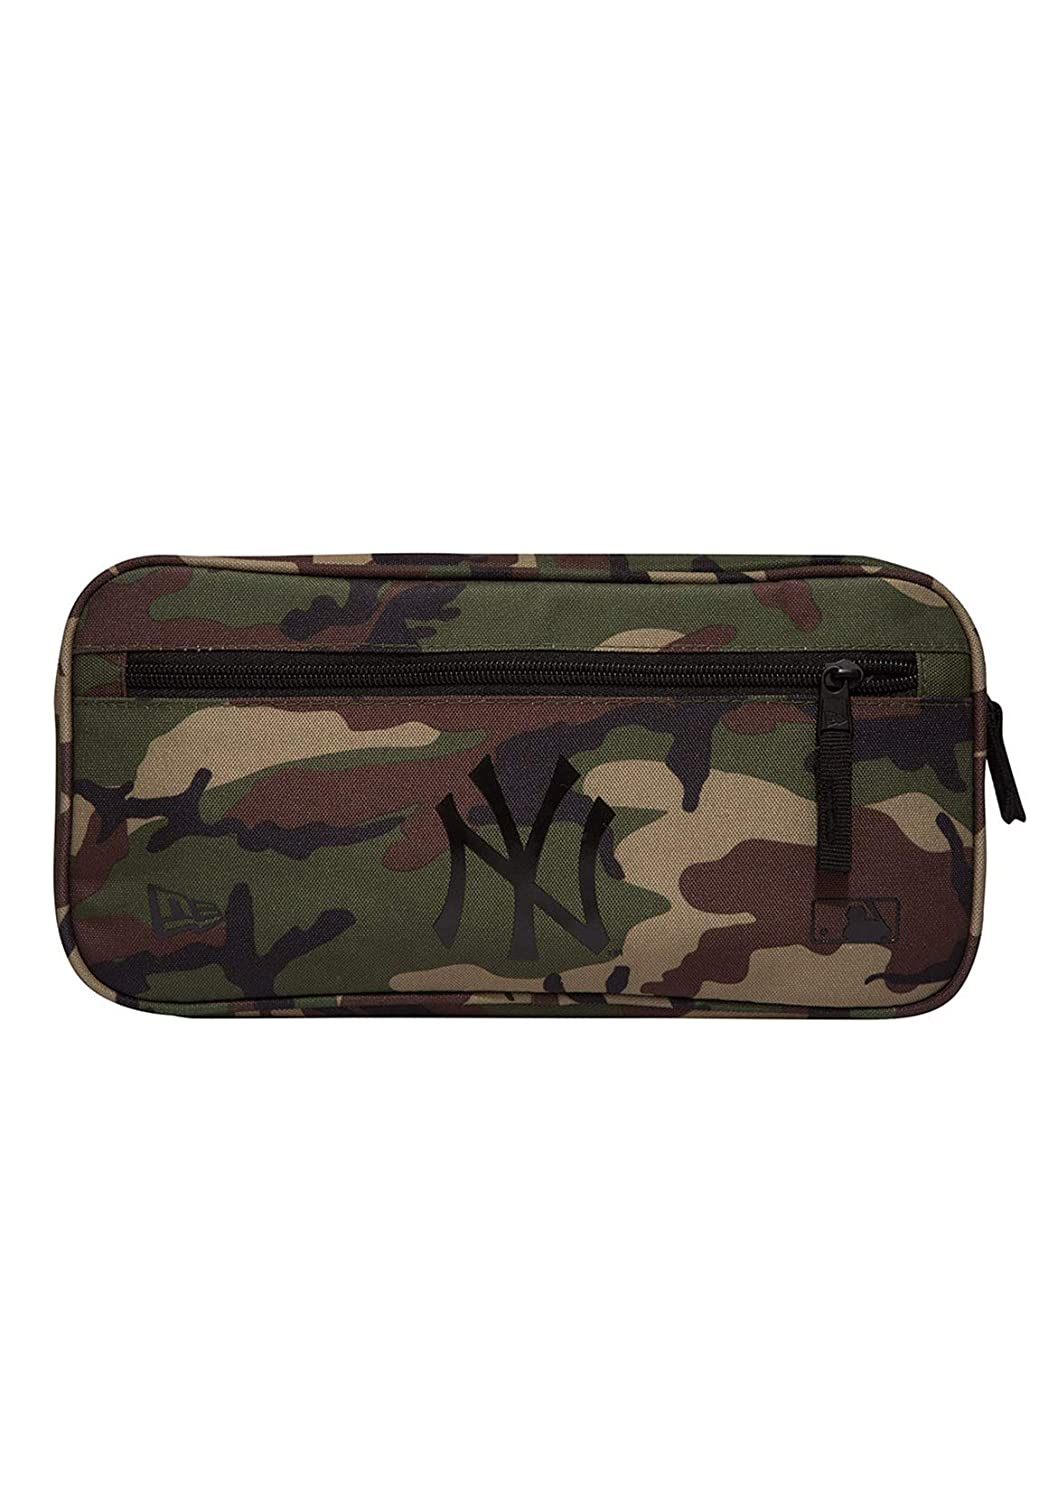 76149b4aeaaa6 ... Tasche Heritage Ruggero Small Items · New Era Yankees Herren Waist Bag  Grün 11587645